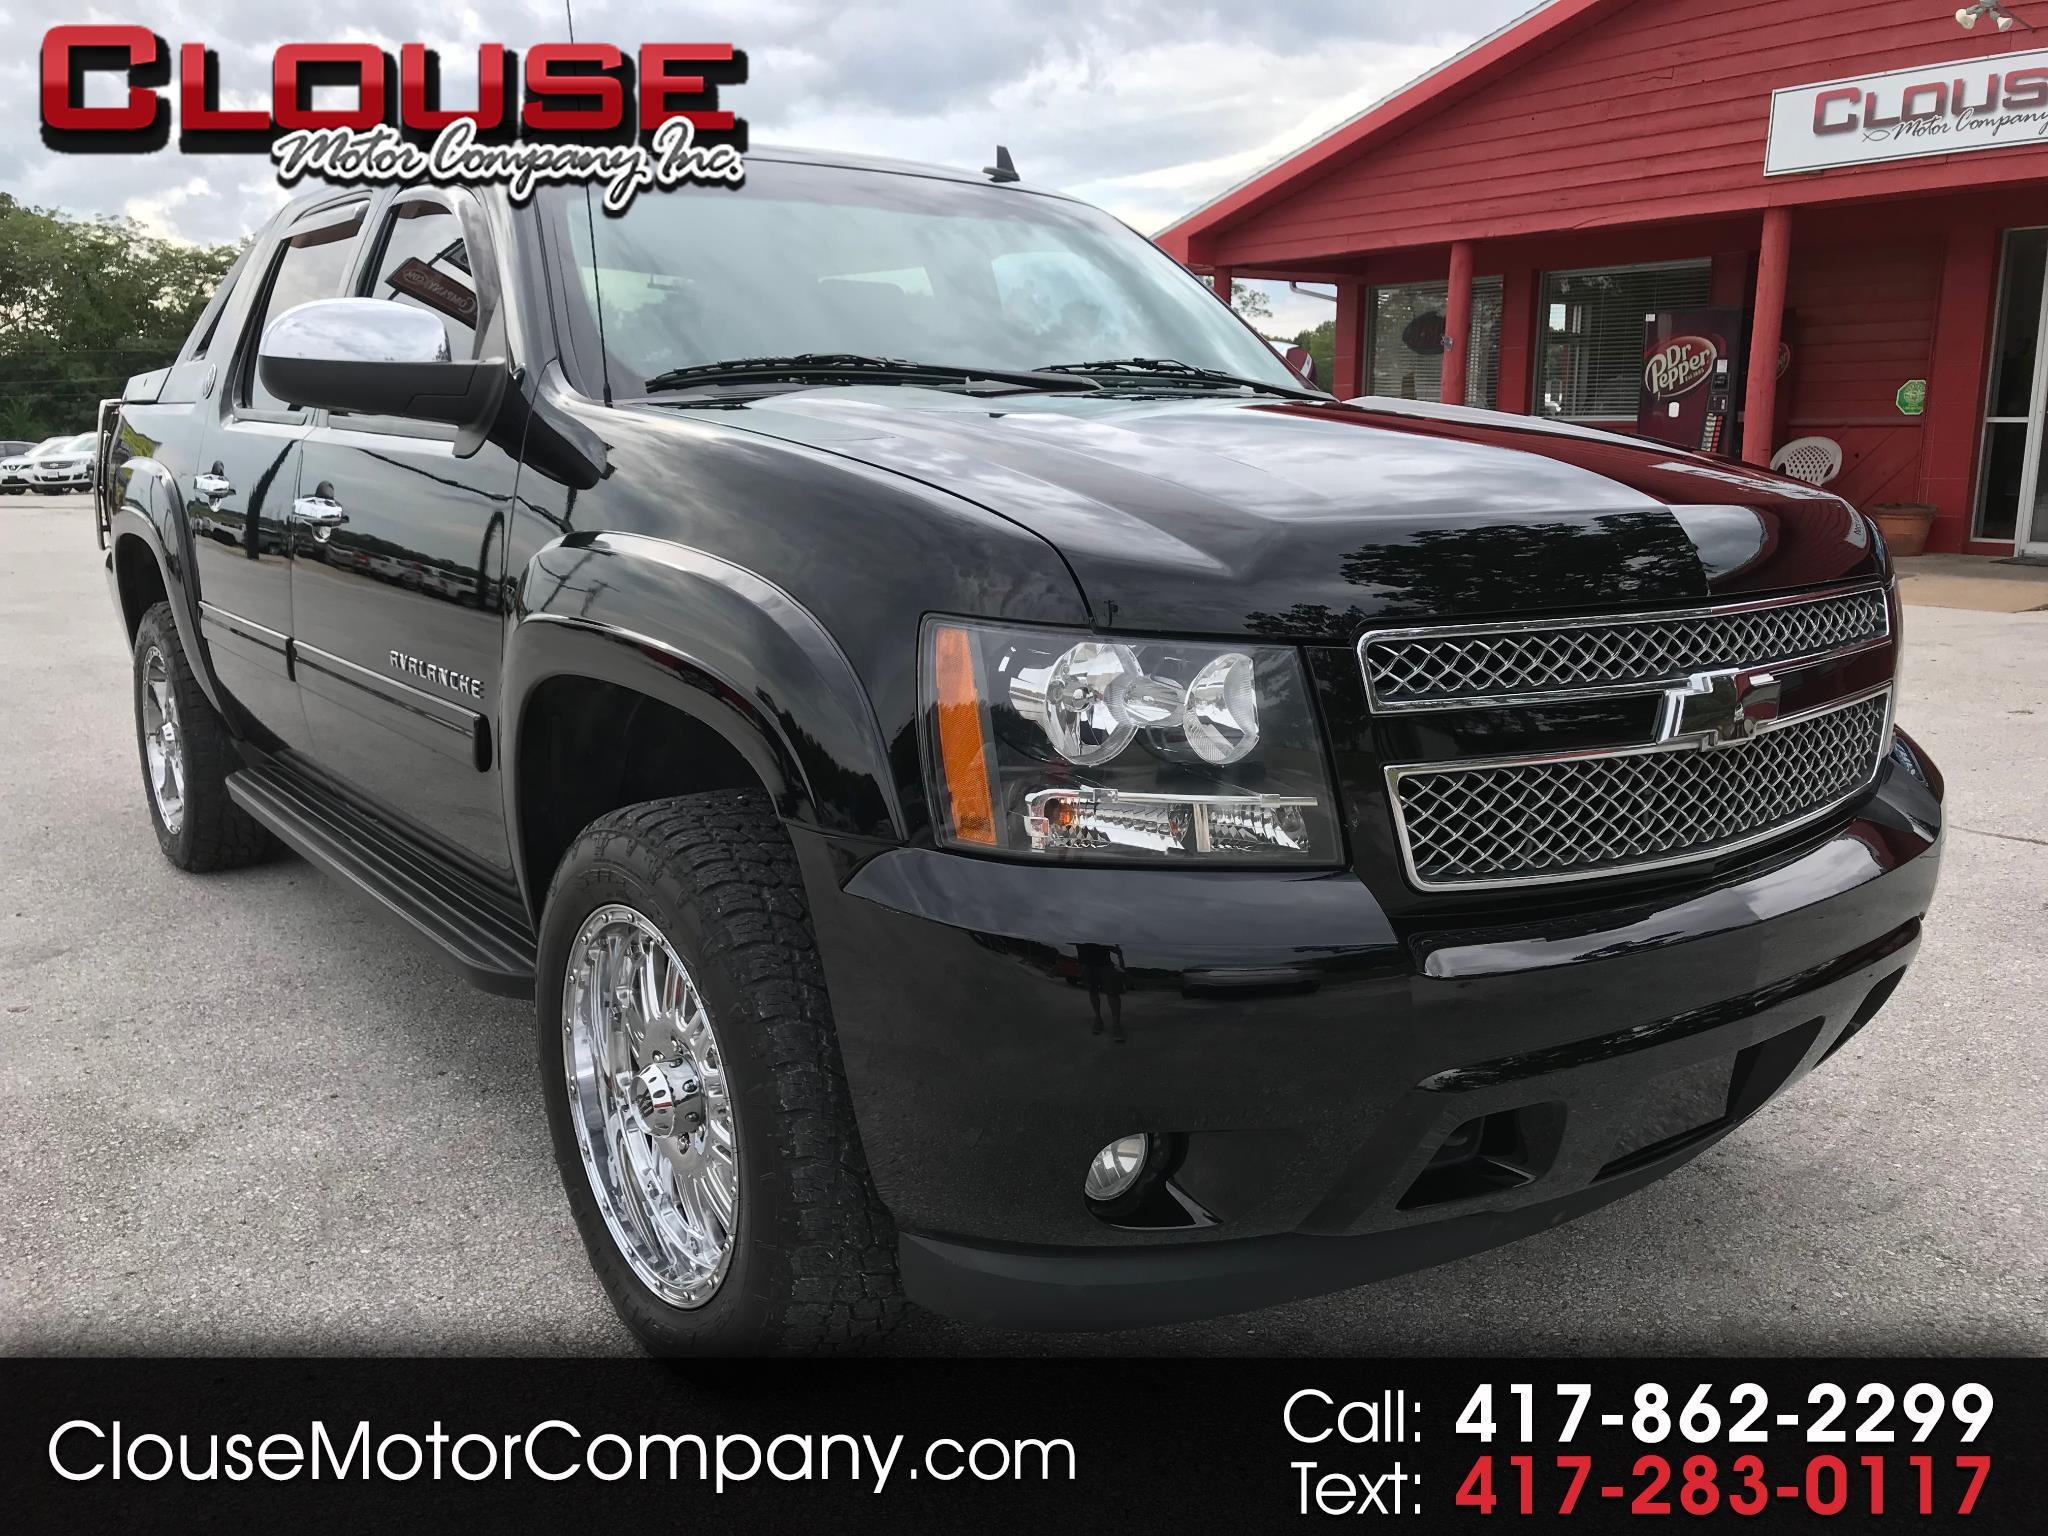 2013 Chevrolet Avalanche 4WD Crew Cab LT Black Diamond Edition